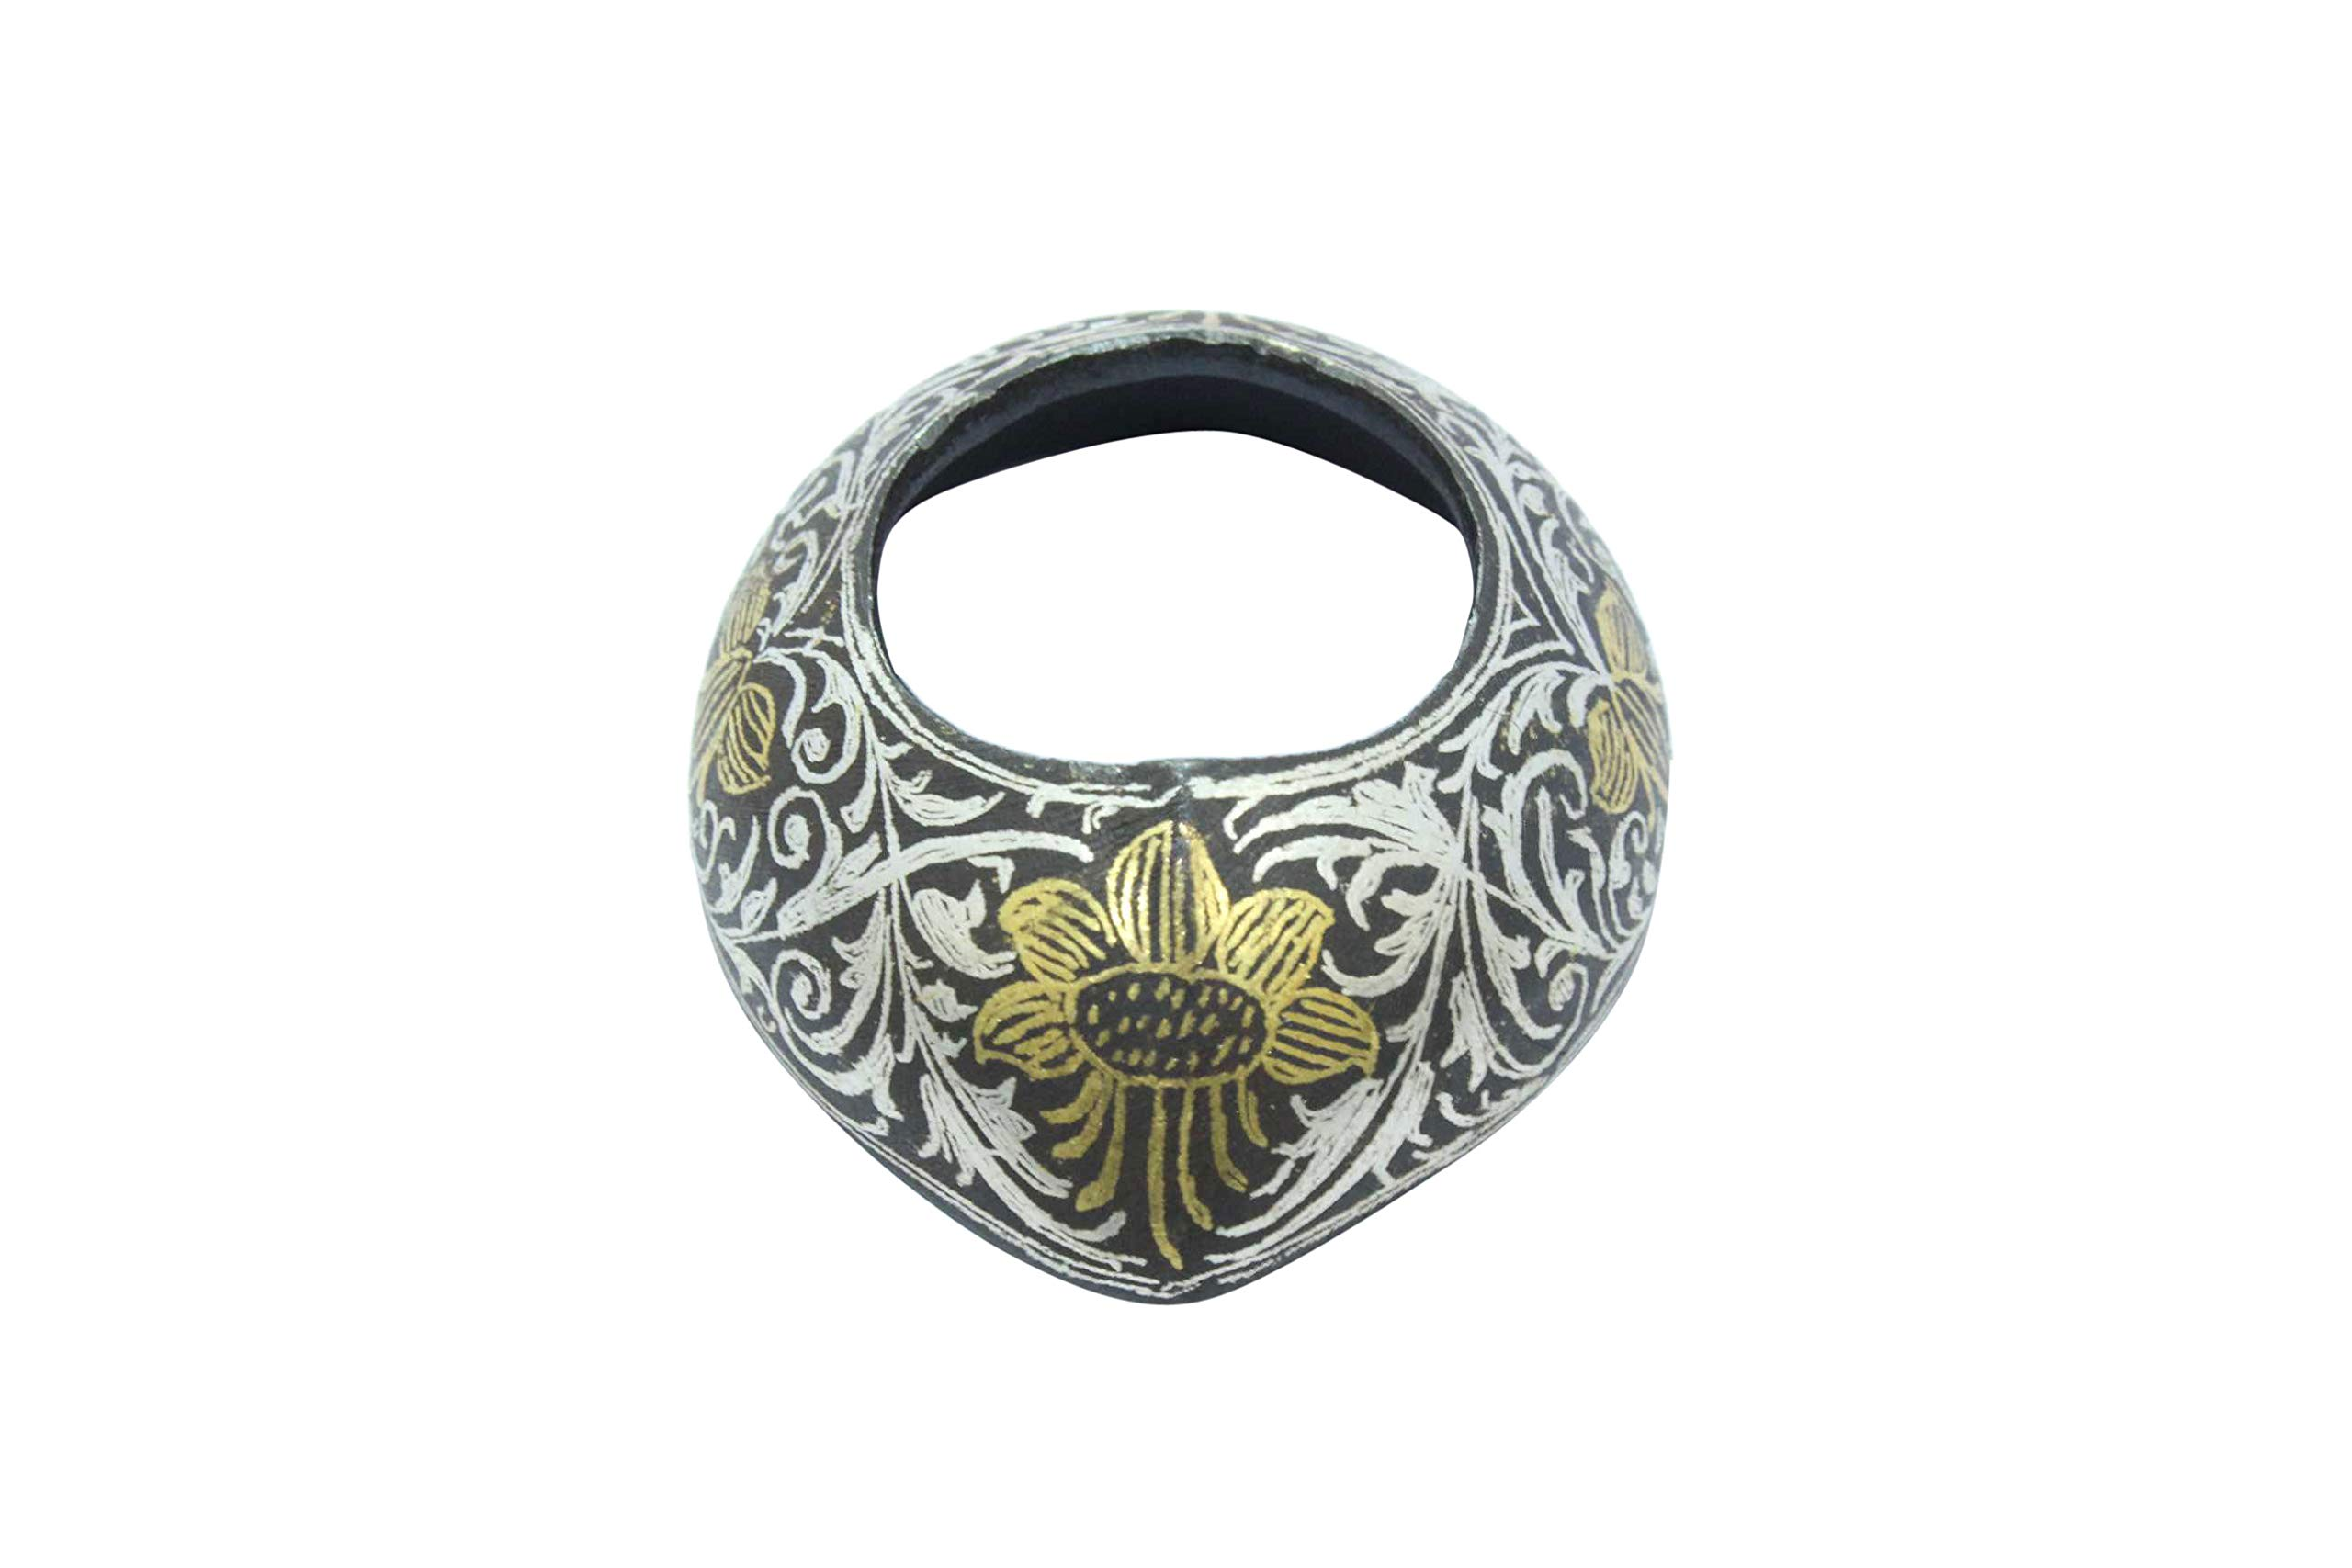 PH Artistic Steel Silver Gold Wire Work Thumb Archery Ring Bow Shooting Handmade Size 11 1/2 by PH Artistic